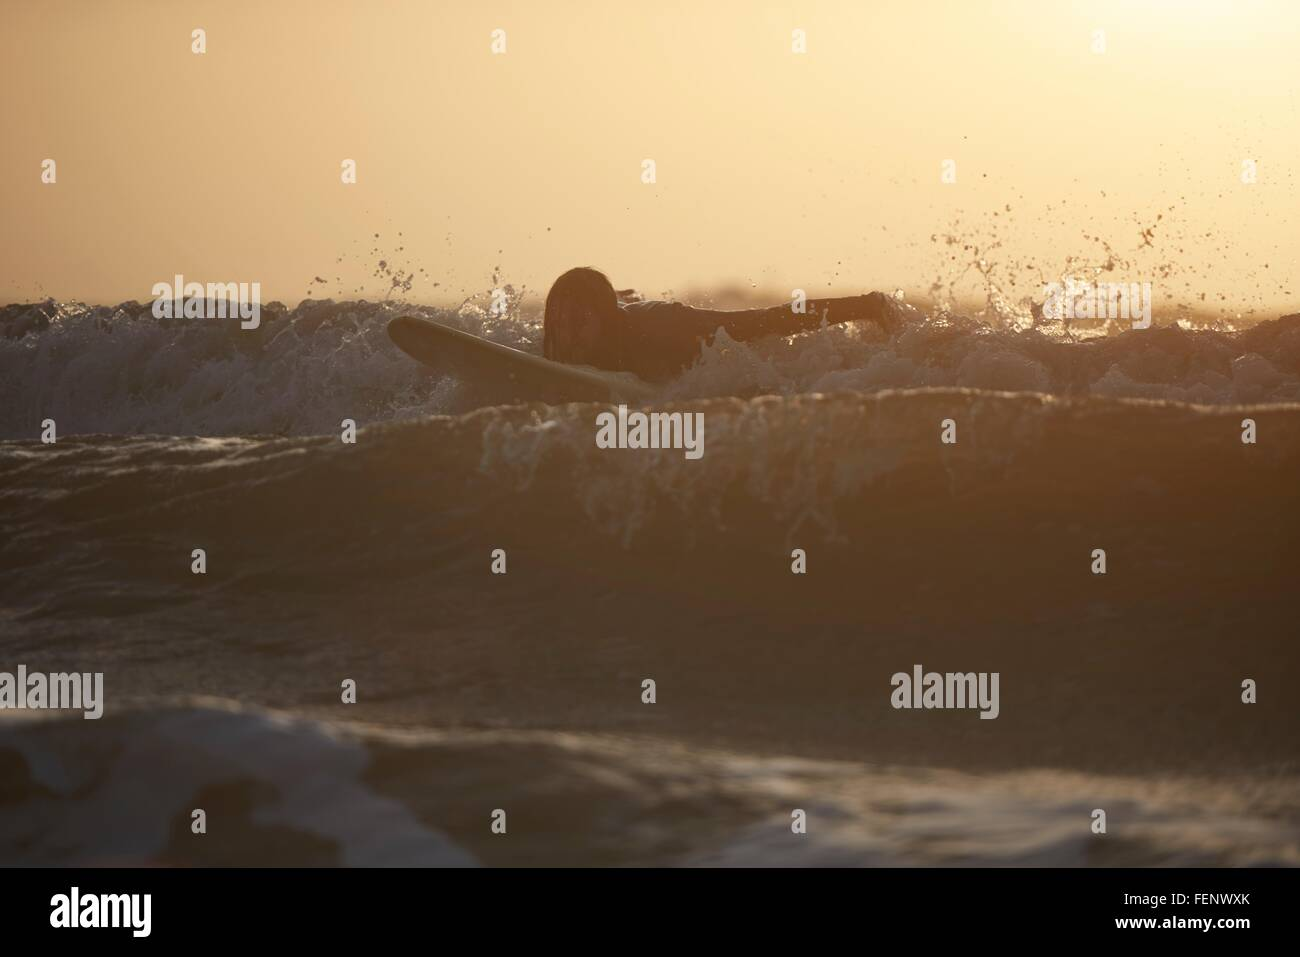 Silhouette of young male surfer surfing in sea, Devon, England, UK - Stock Image